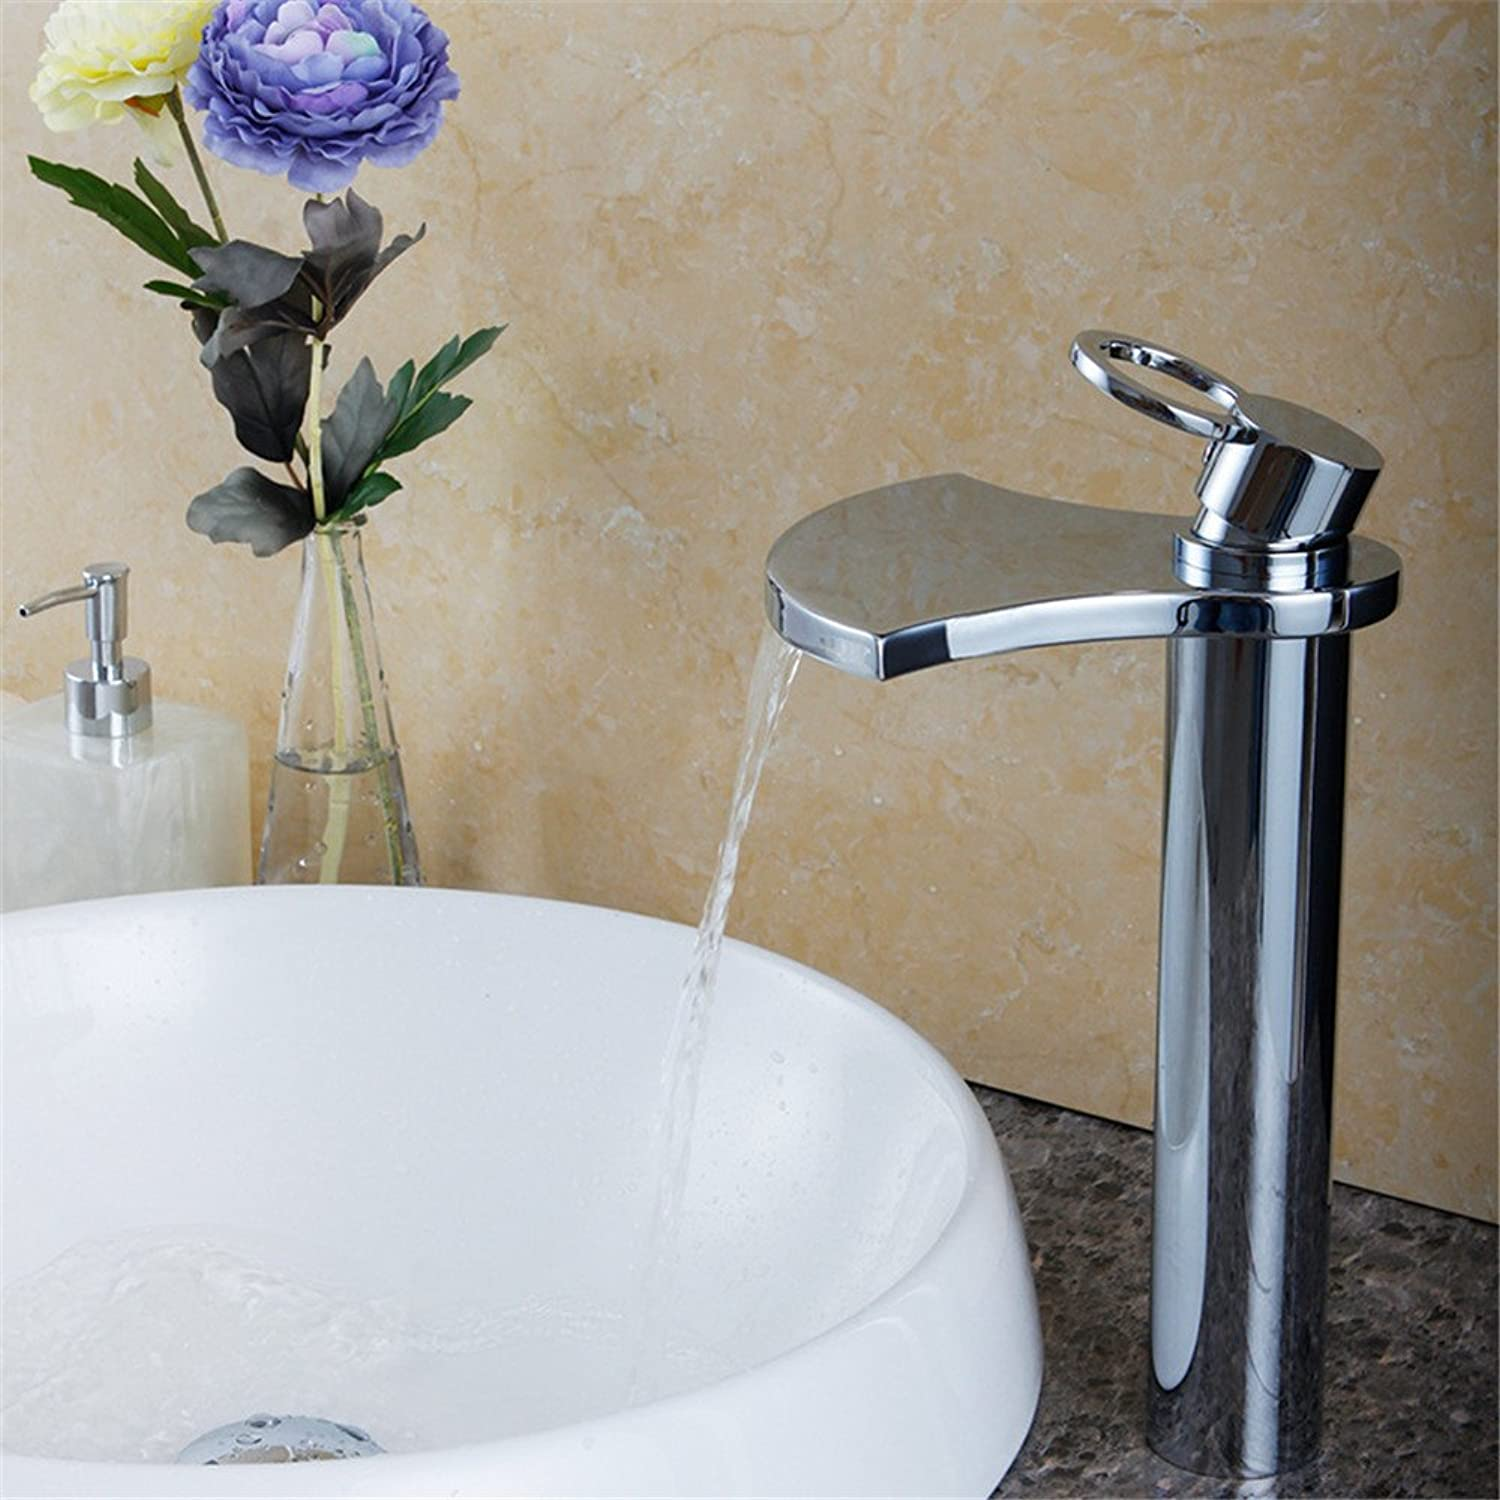 LHbox Basin Mixer Tap Bathroom Sink Faucet The copper material with led tri-color red blue and green water falls out of the hot and cold water basin mixer Janitorial & Sanitation Supplies Commercial Bathroom Sink Taps